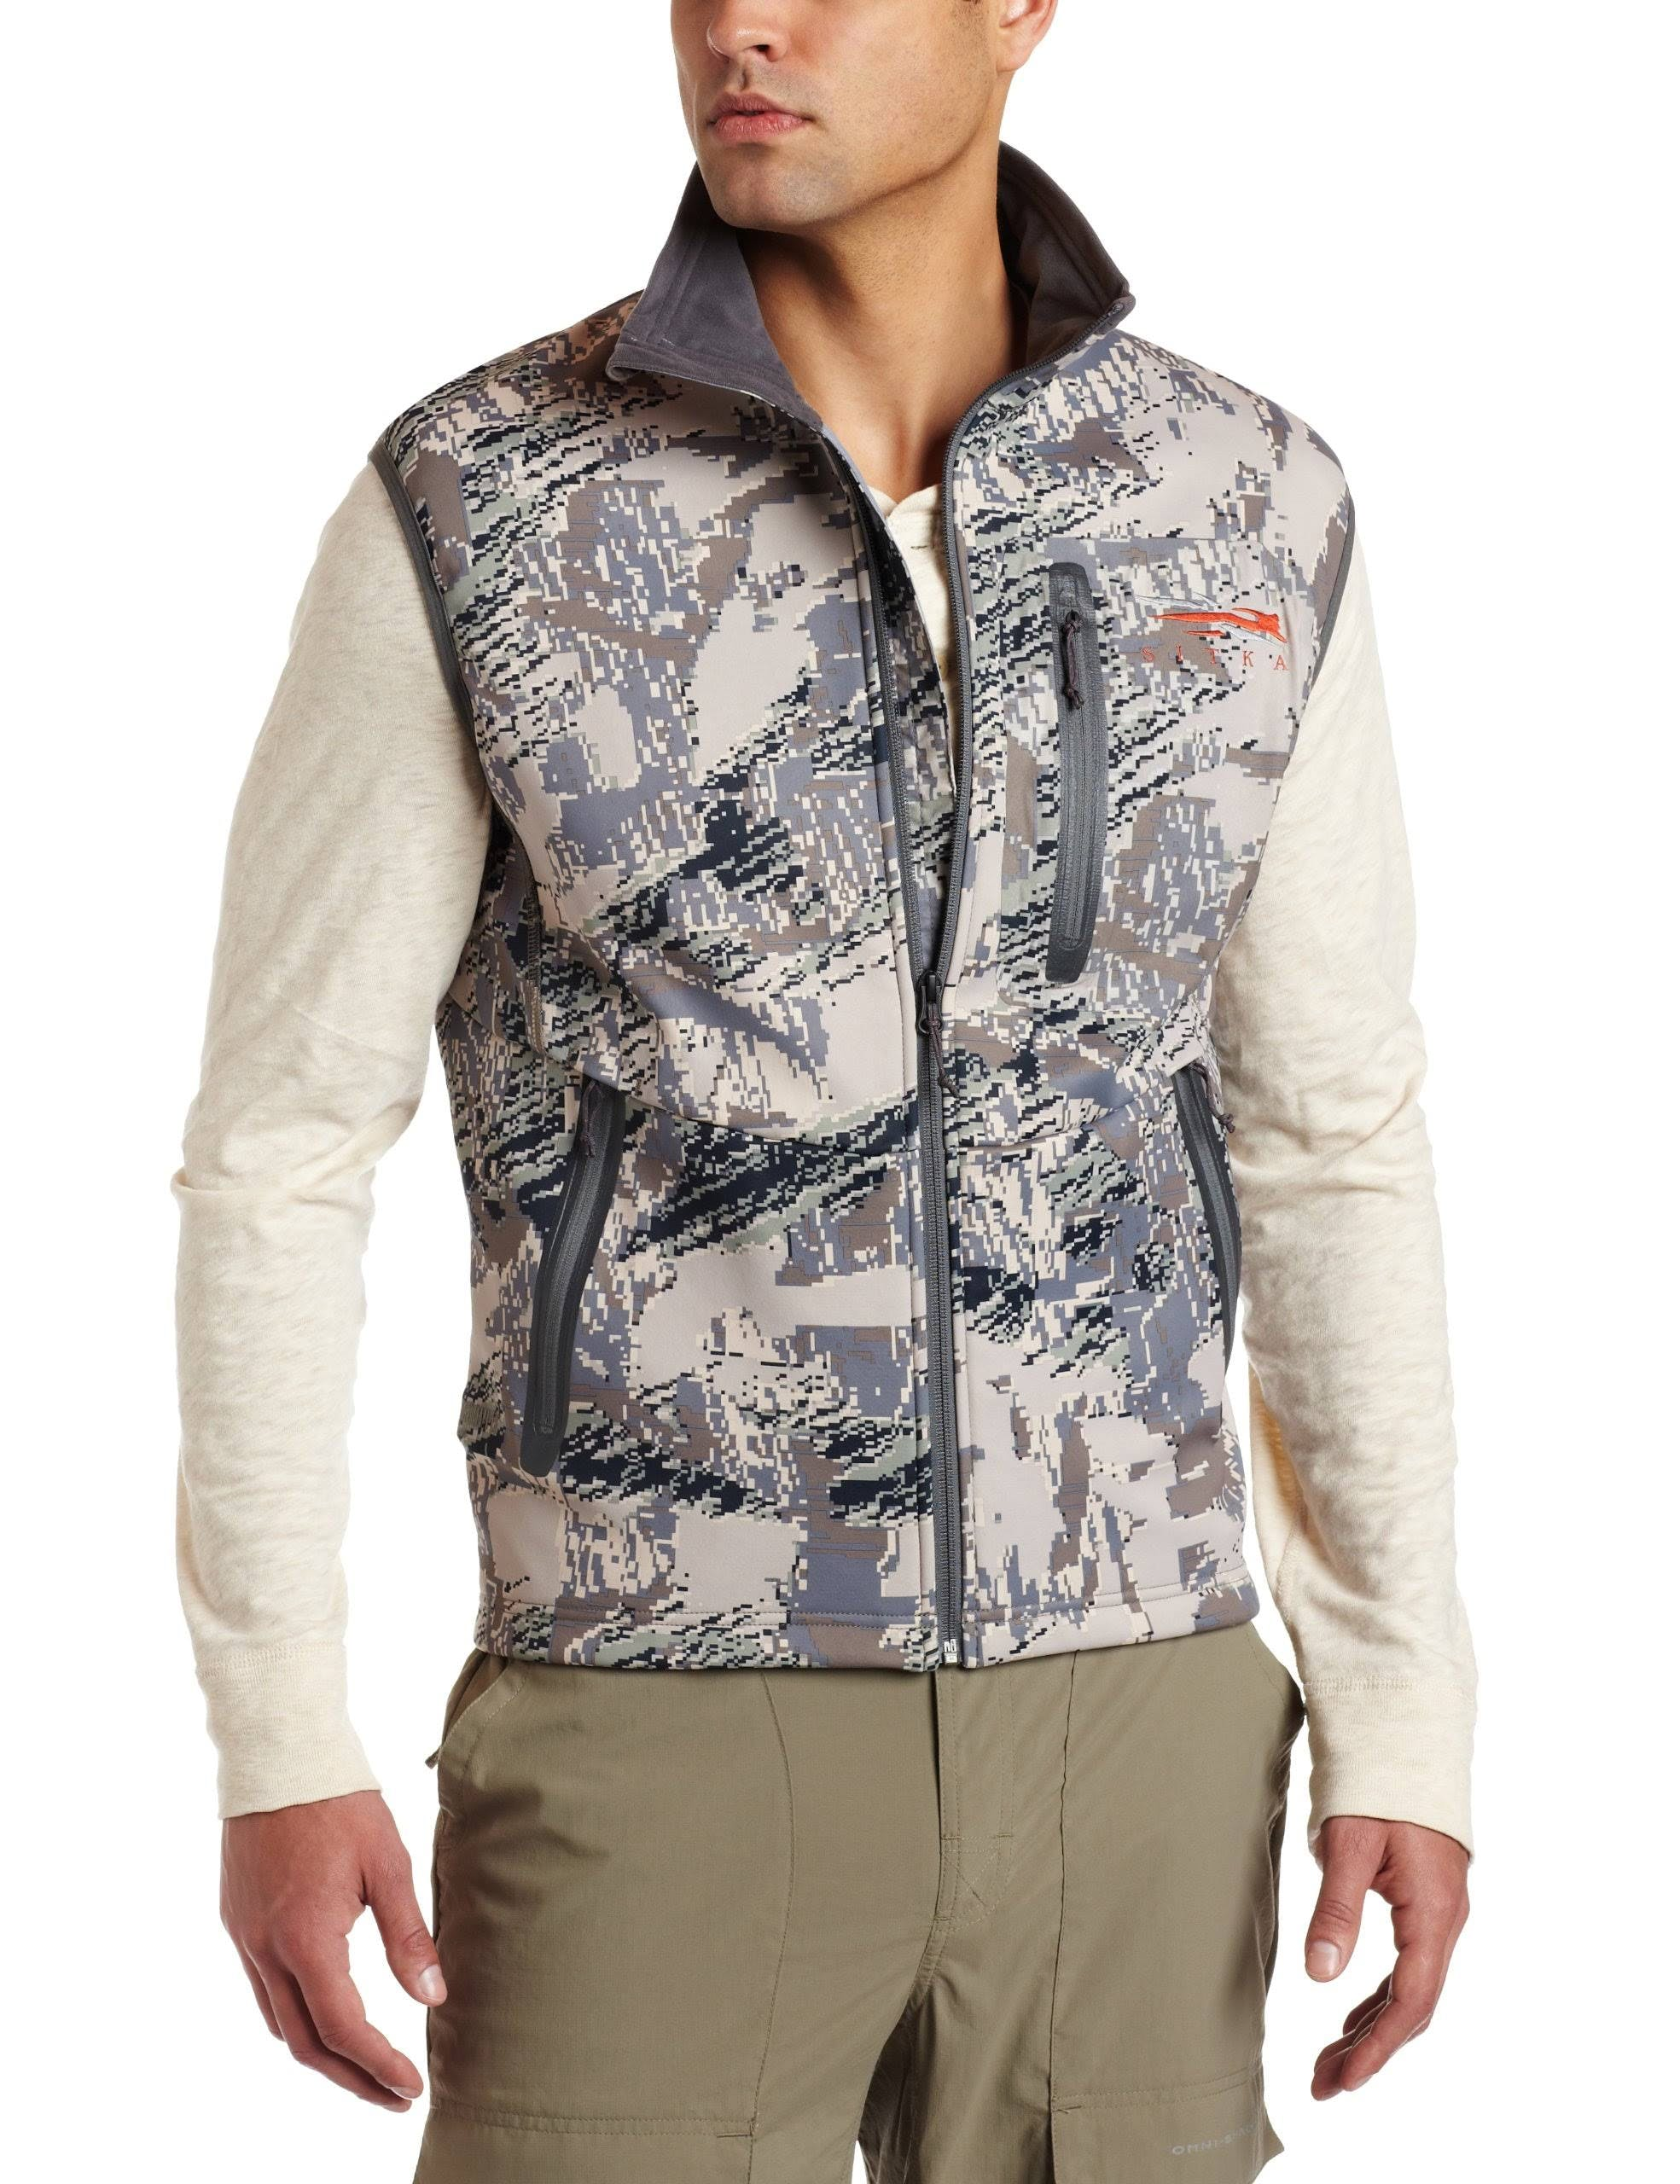 Sitka Gear Jetstream Vest - Optifade Open Country